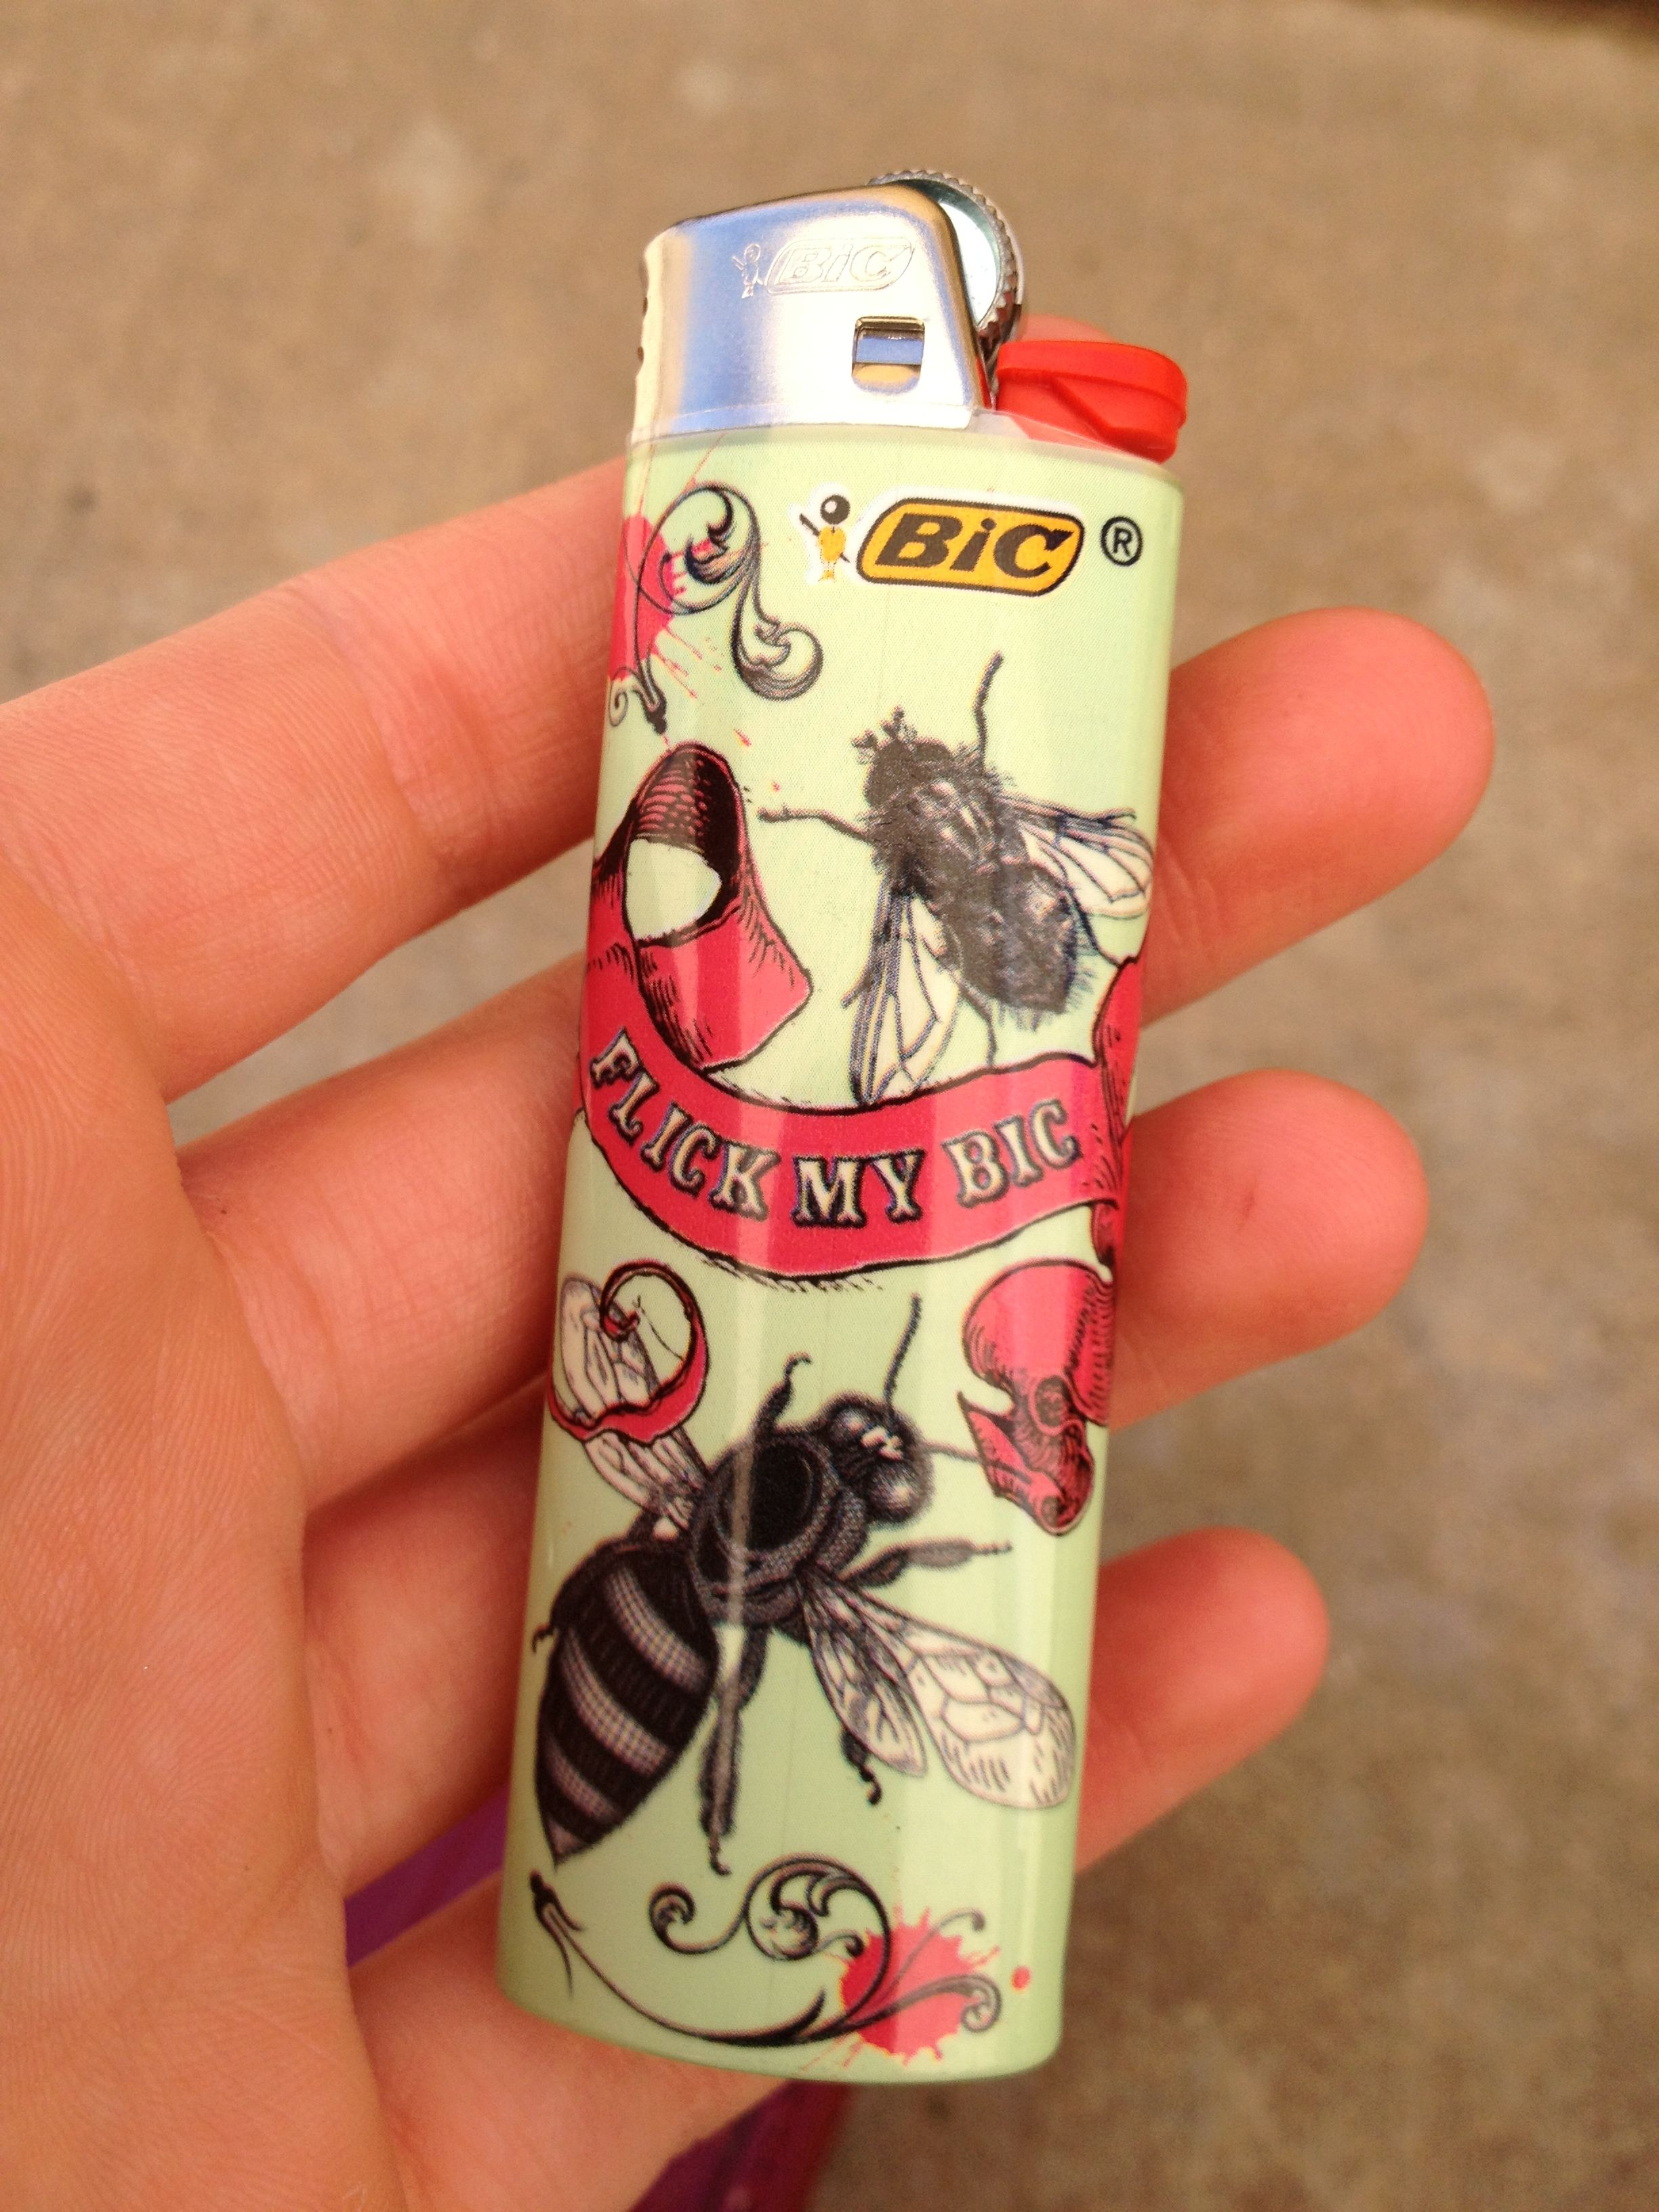 Pin by Jes Gunter on Art Bic, Convenience store products